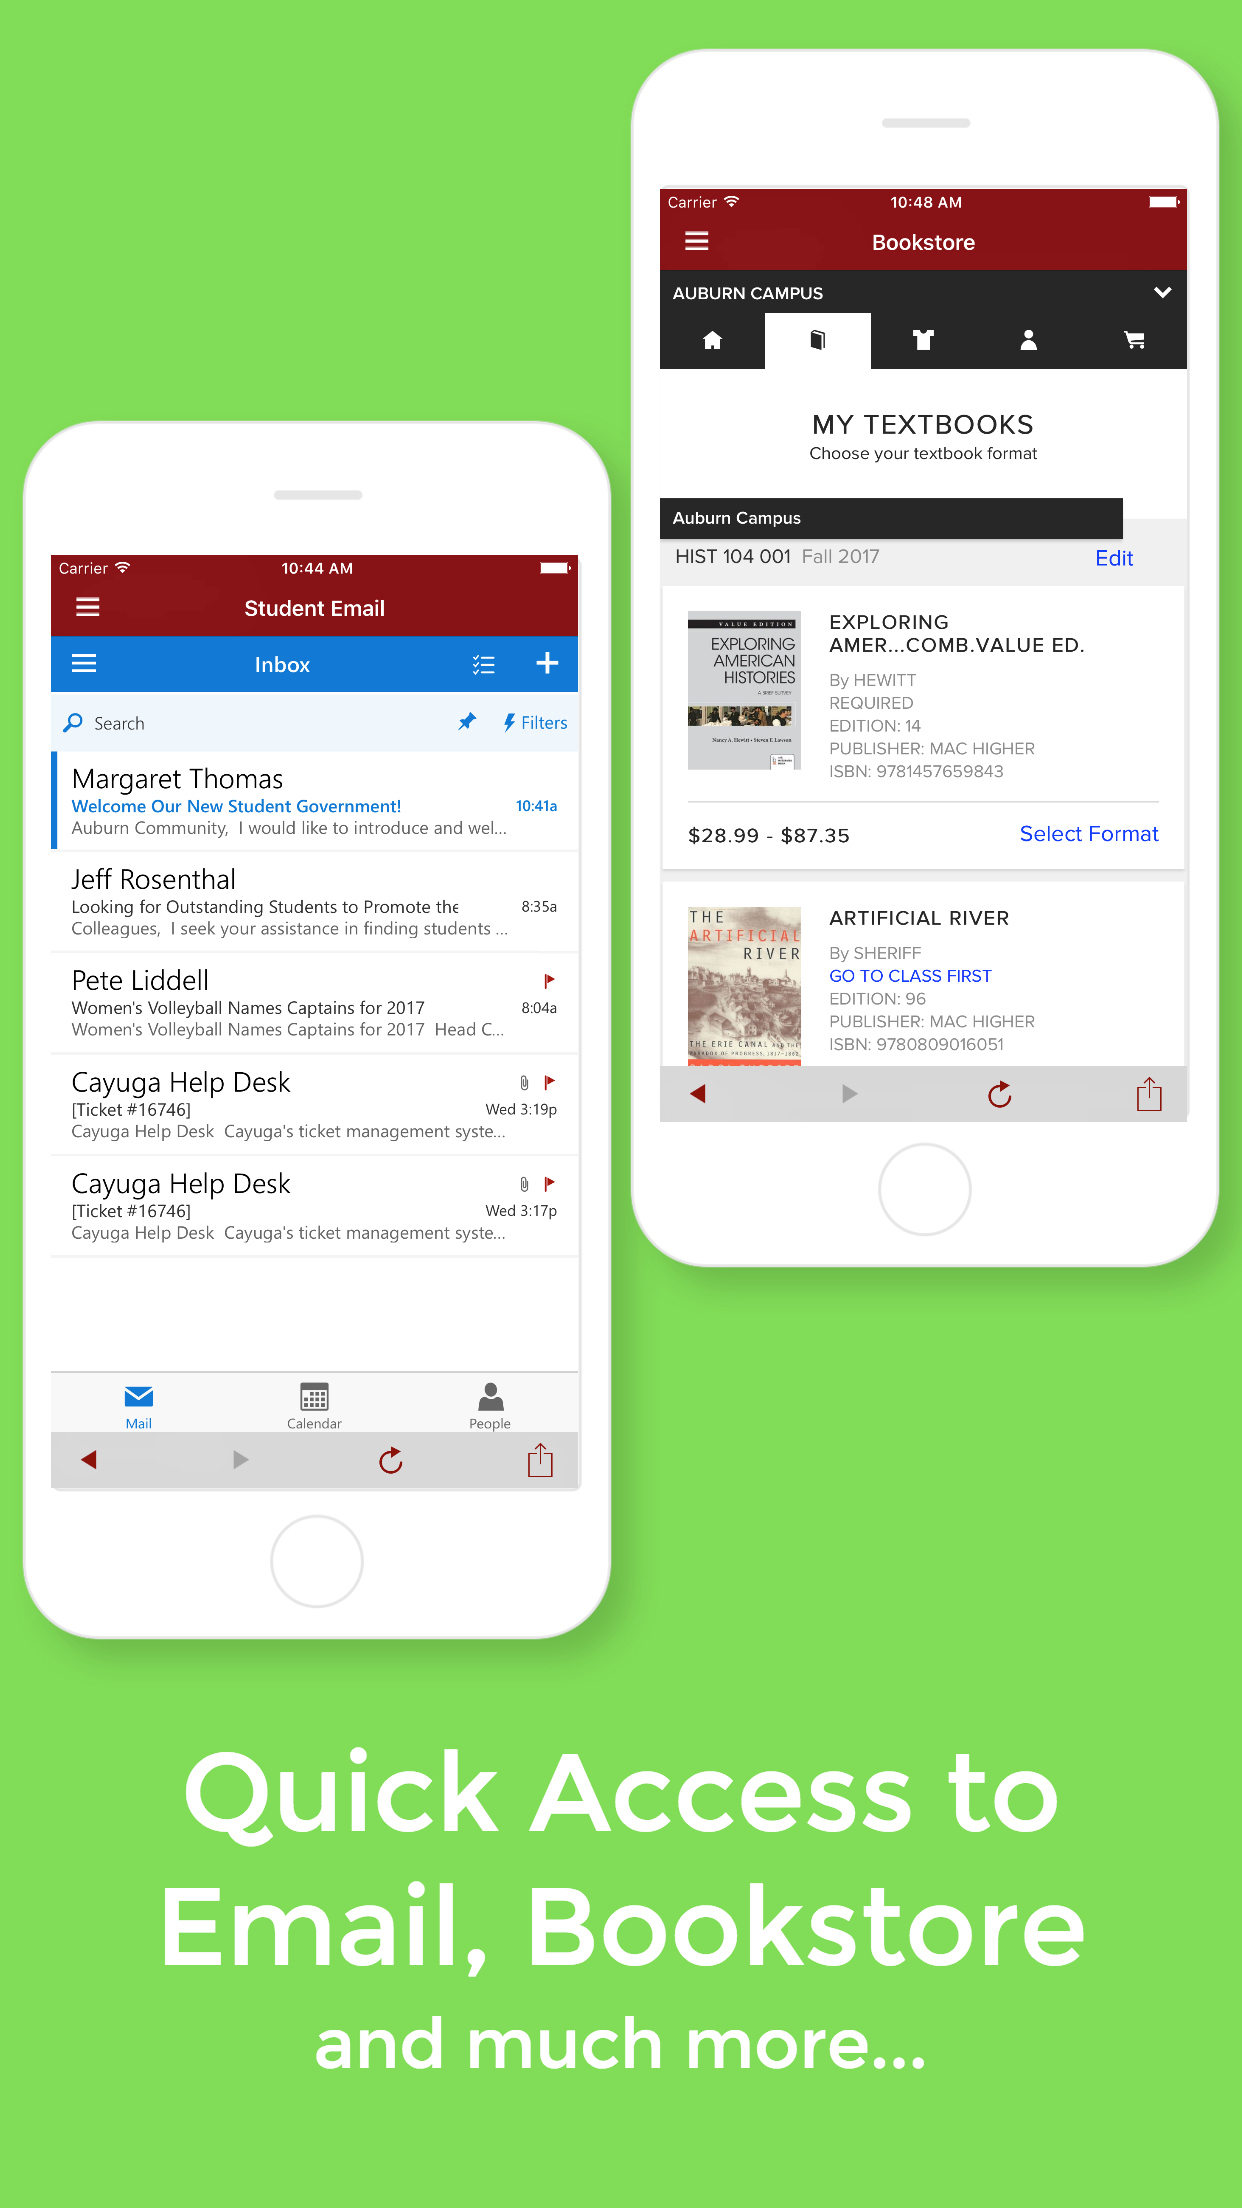 Quick access to student email, Blackboard, the bookstore, and more